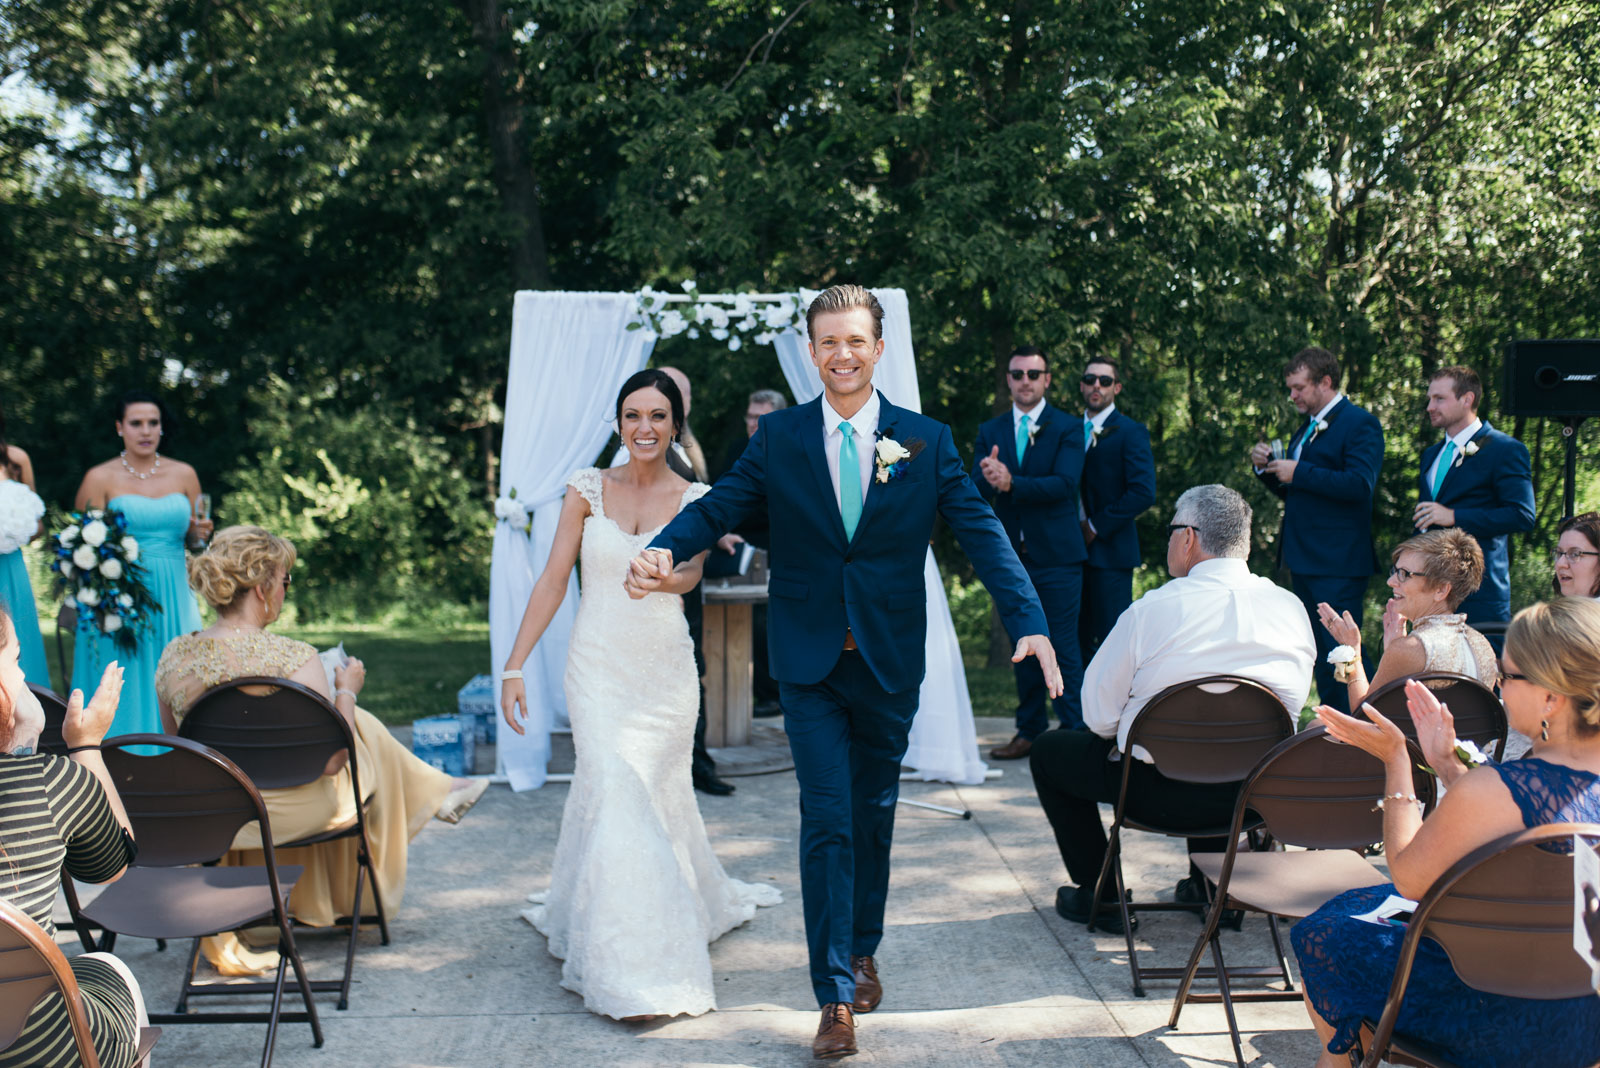 bride and groom walk down aisle after wedding ceremony at squaw creek park